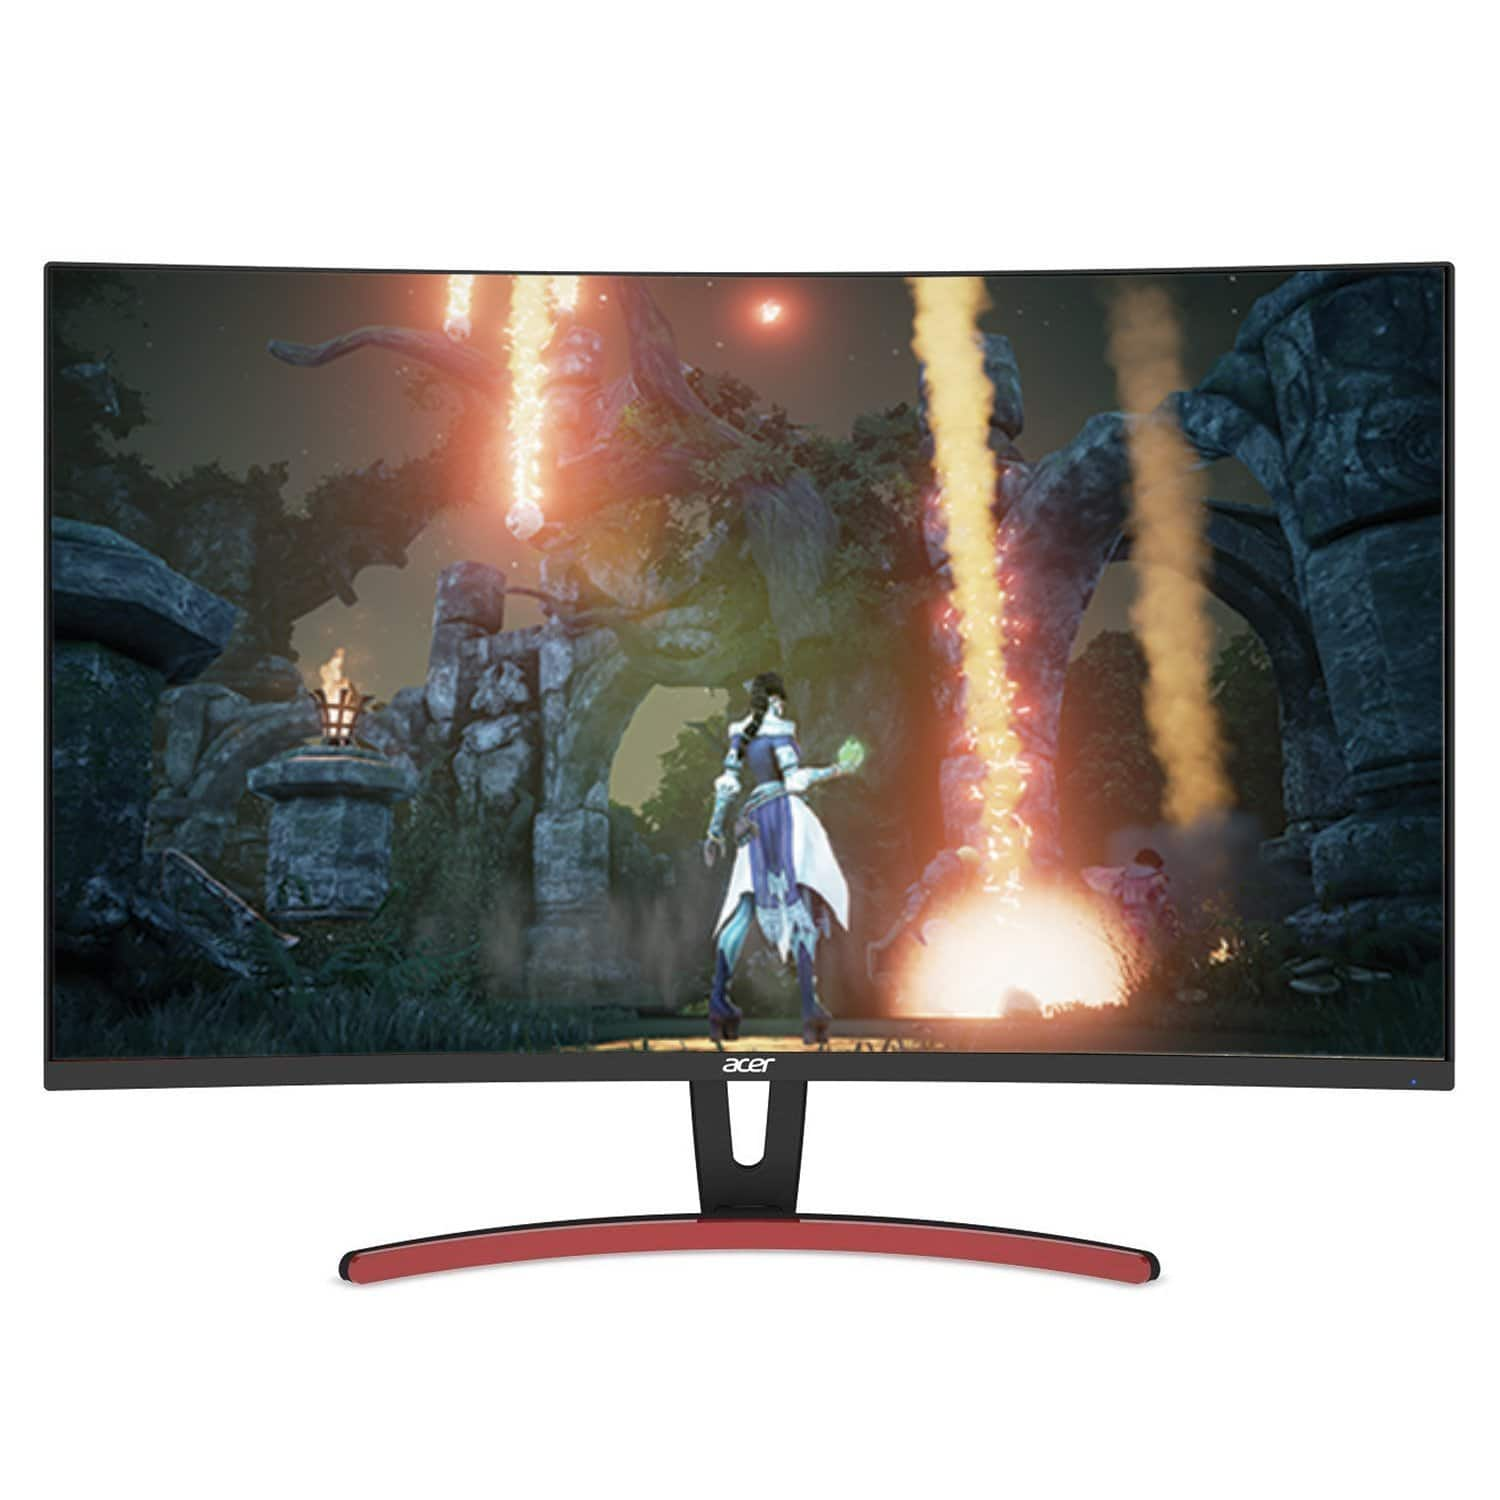 """31.5"""" Acer ED323QUR Abidpx Curved 2560x1440 144Hz FreeSync VA Monitor $279.99 + Free Shipping"""